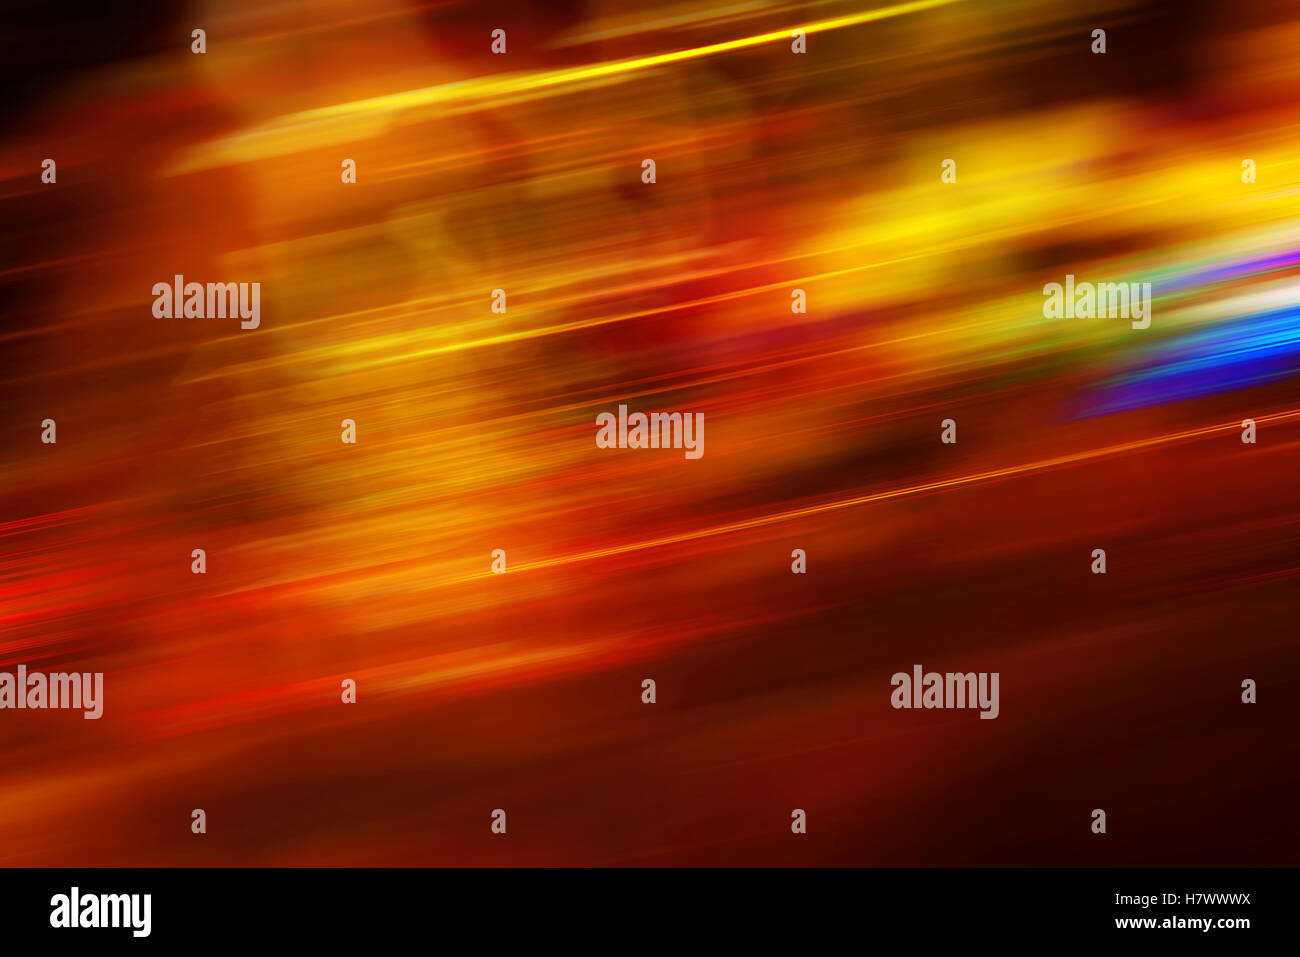 Colorful motion blur background with light streaks - Stock Image